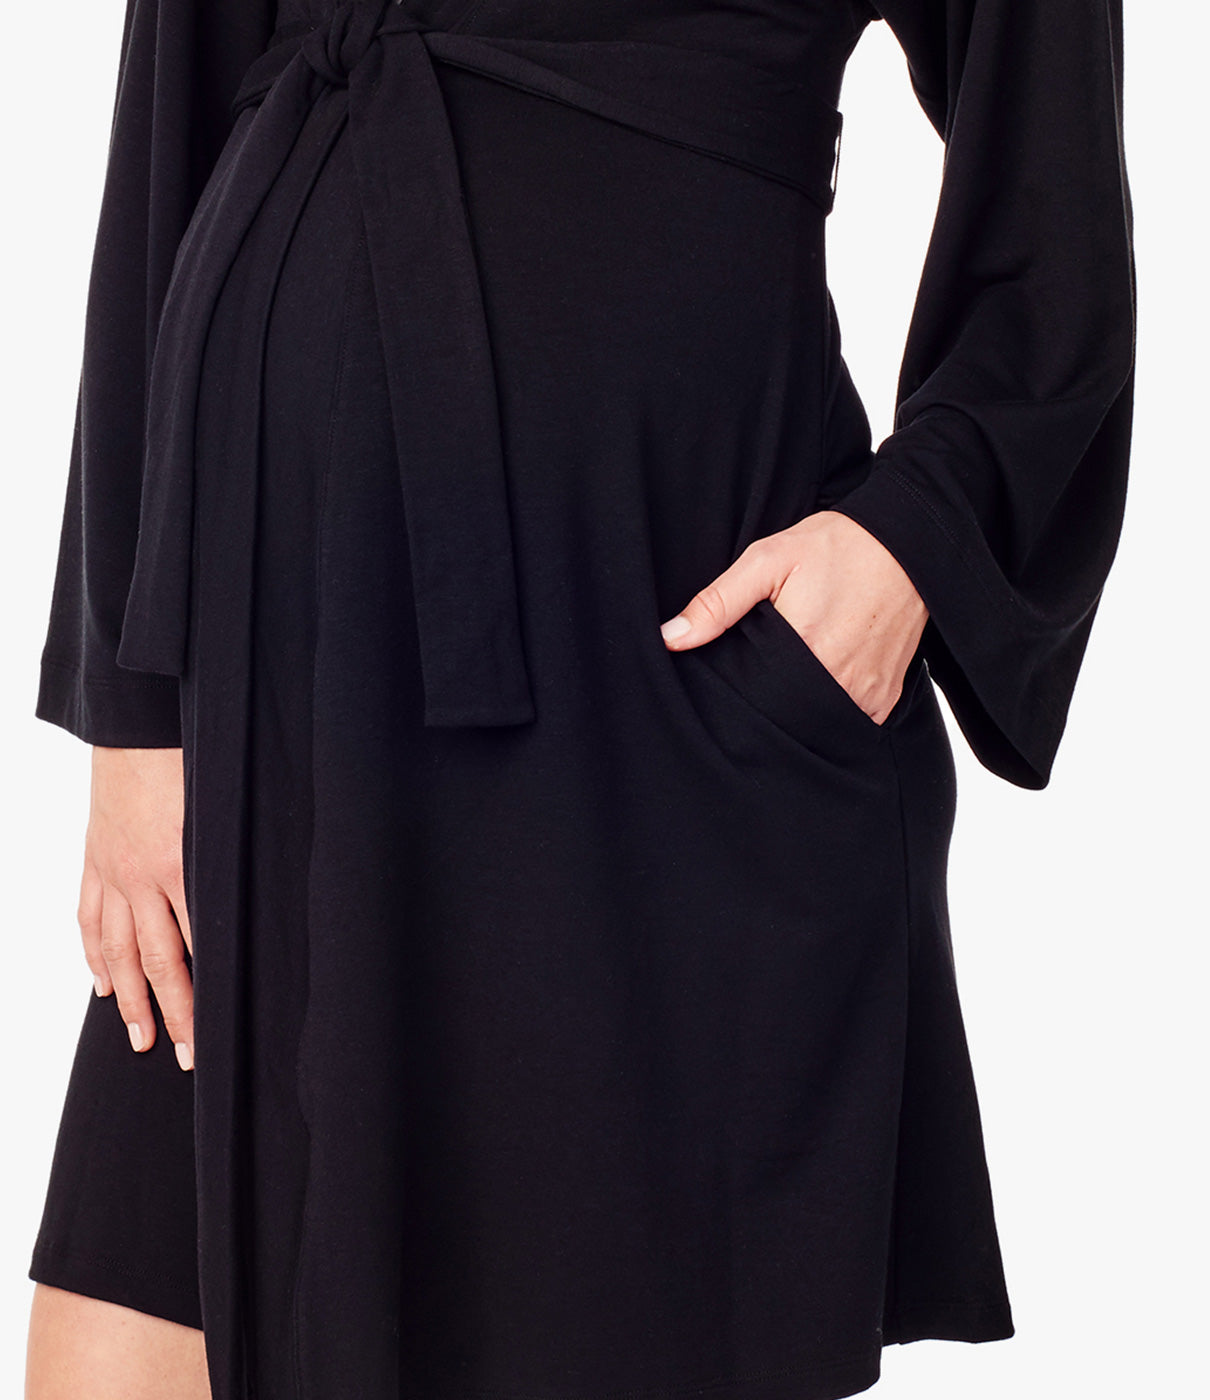 IN THE DETAILSRobe has kimono sleeves, pockets at hips and ties at the waist for a cozy and flattering fit